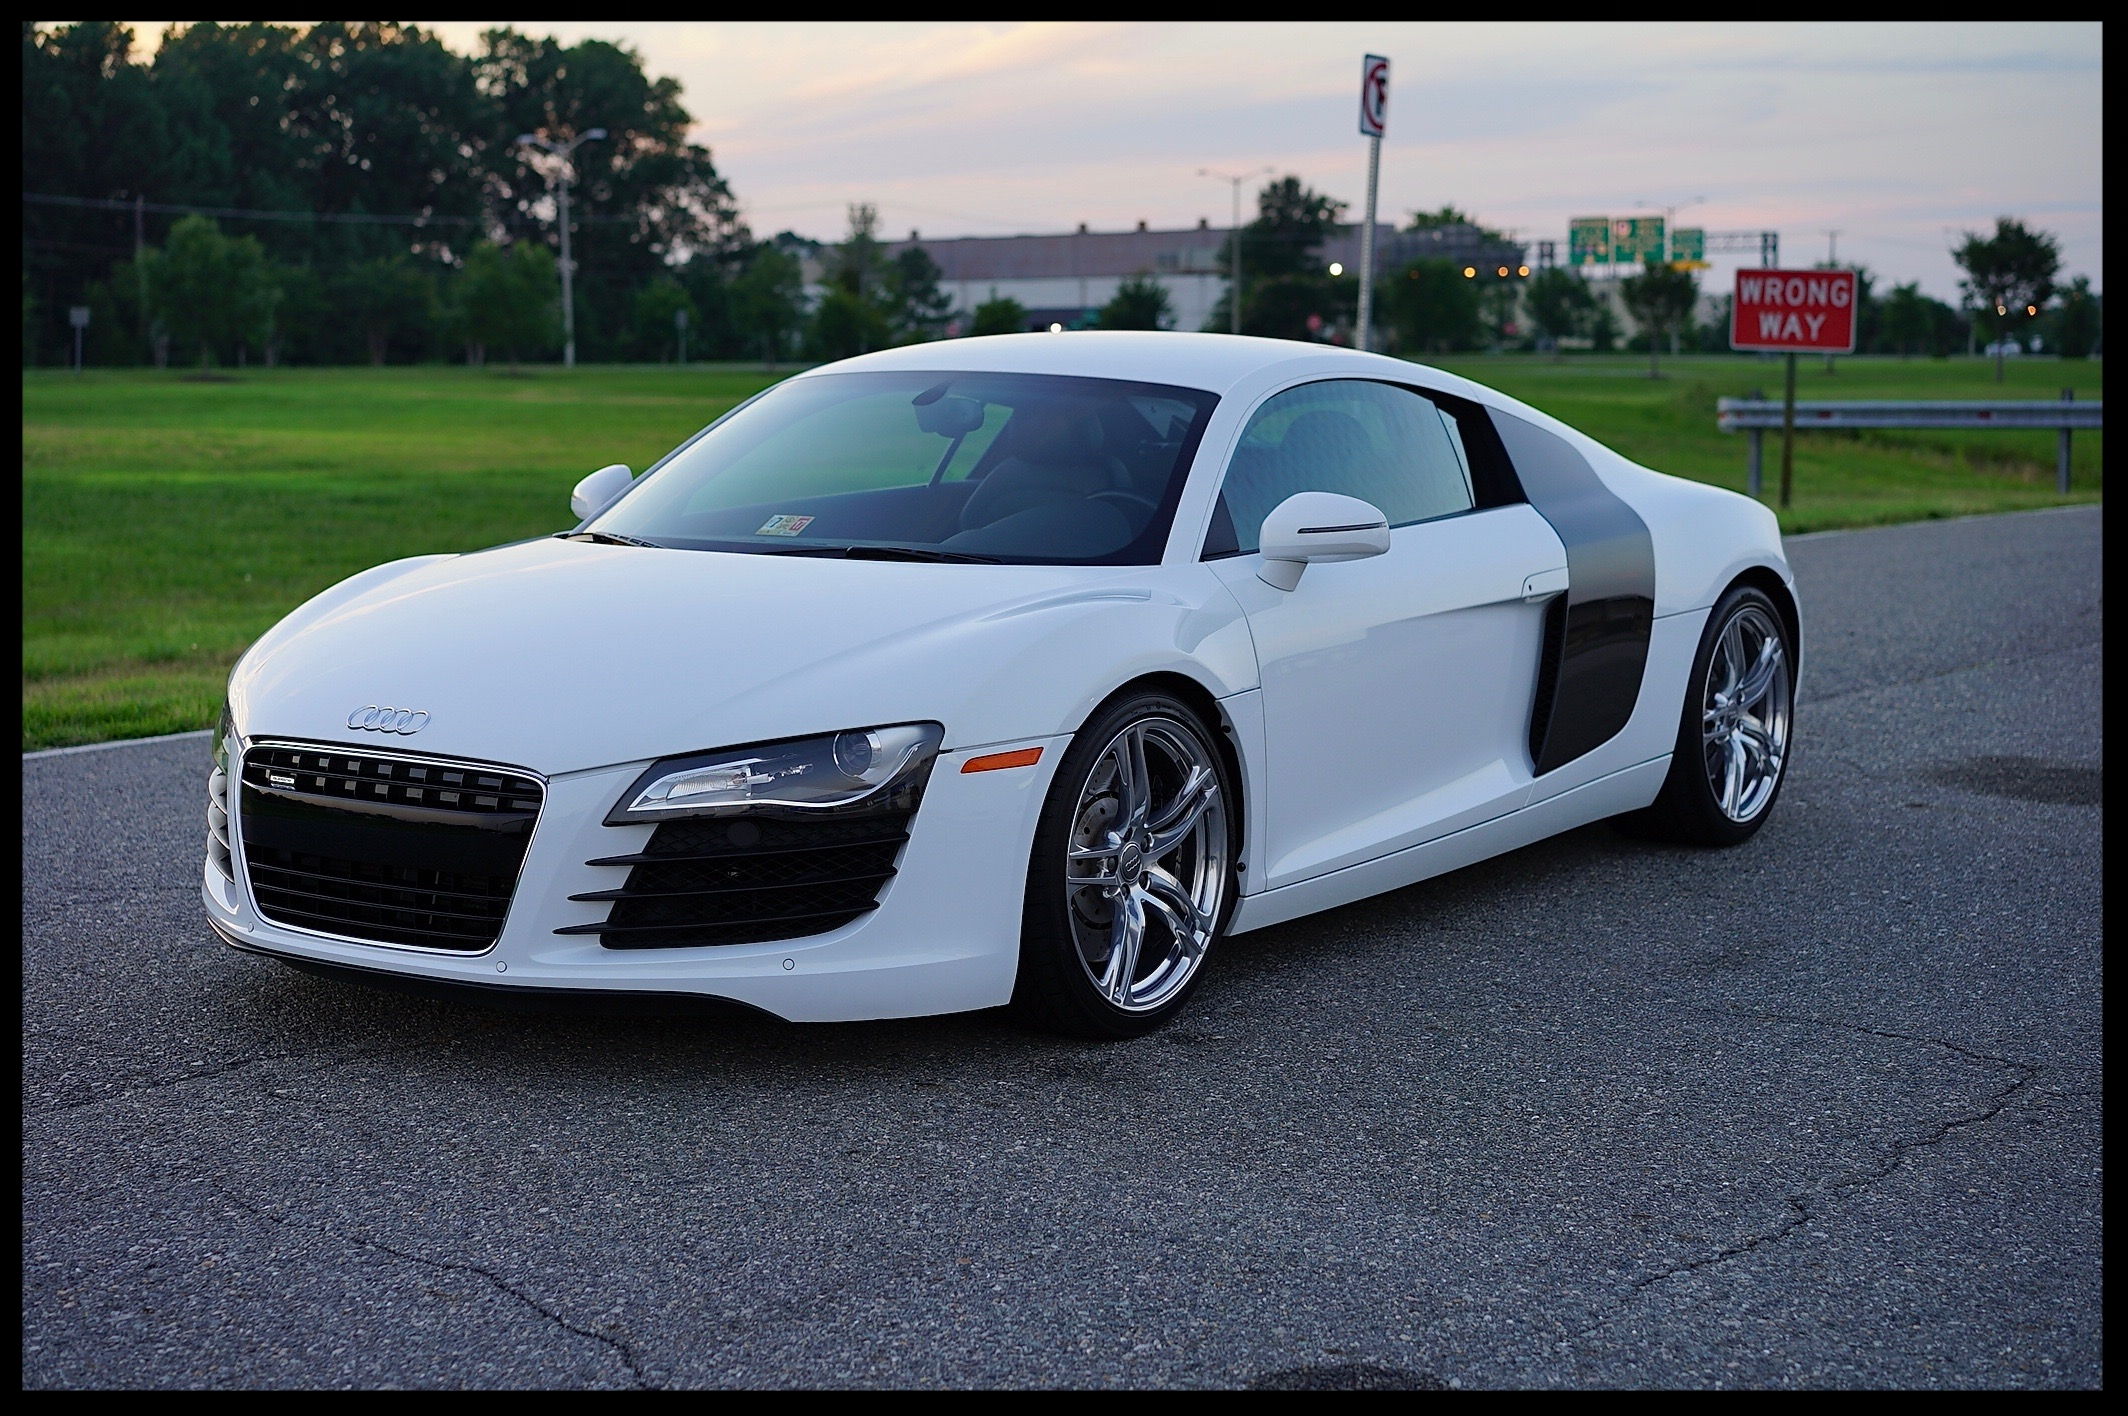 Amazing Audi R8 with Carbon Fiber Package...A True 1 Owner and Dealer Serviced Since Day 1 of Ownership...Highly Optioned